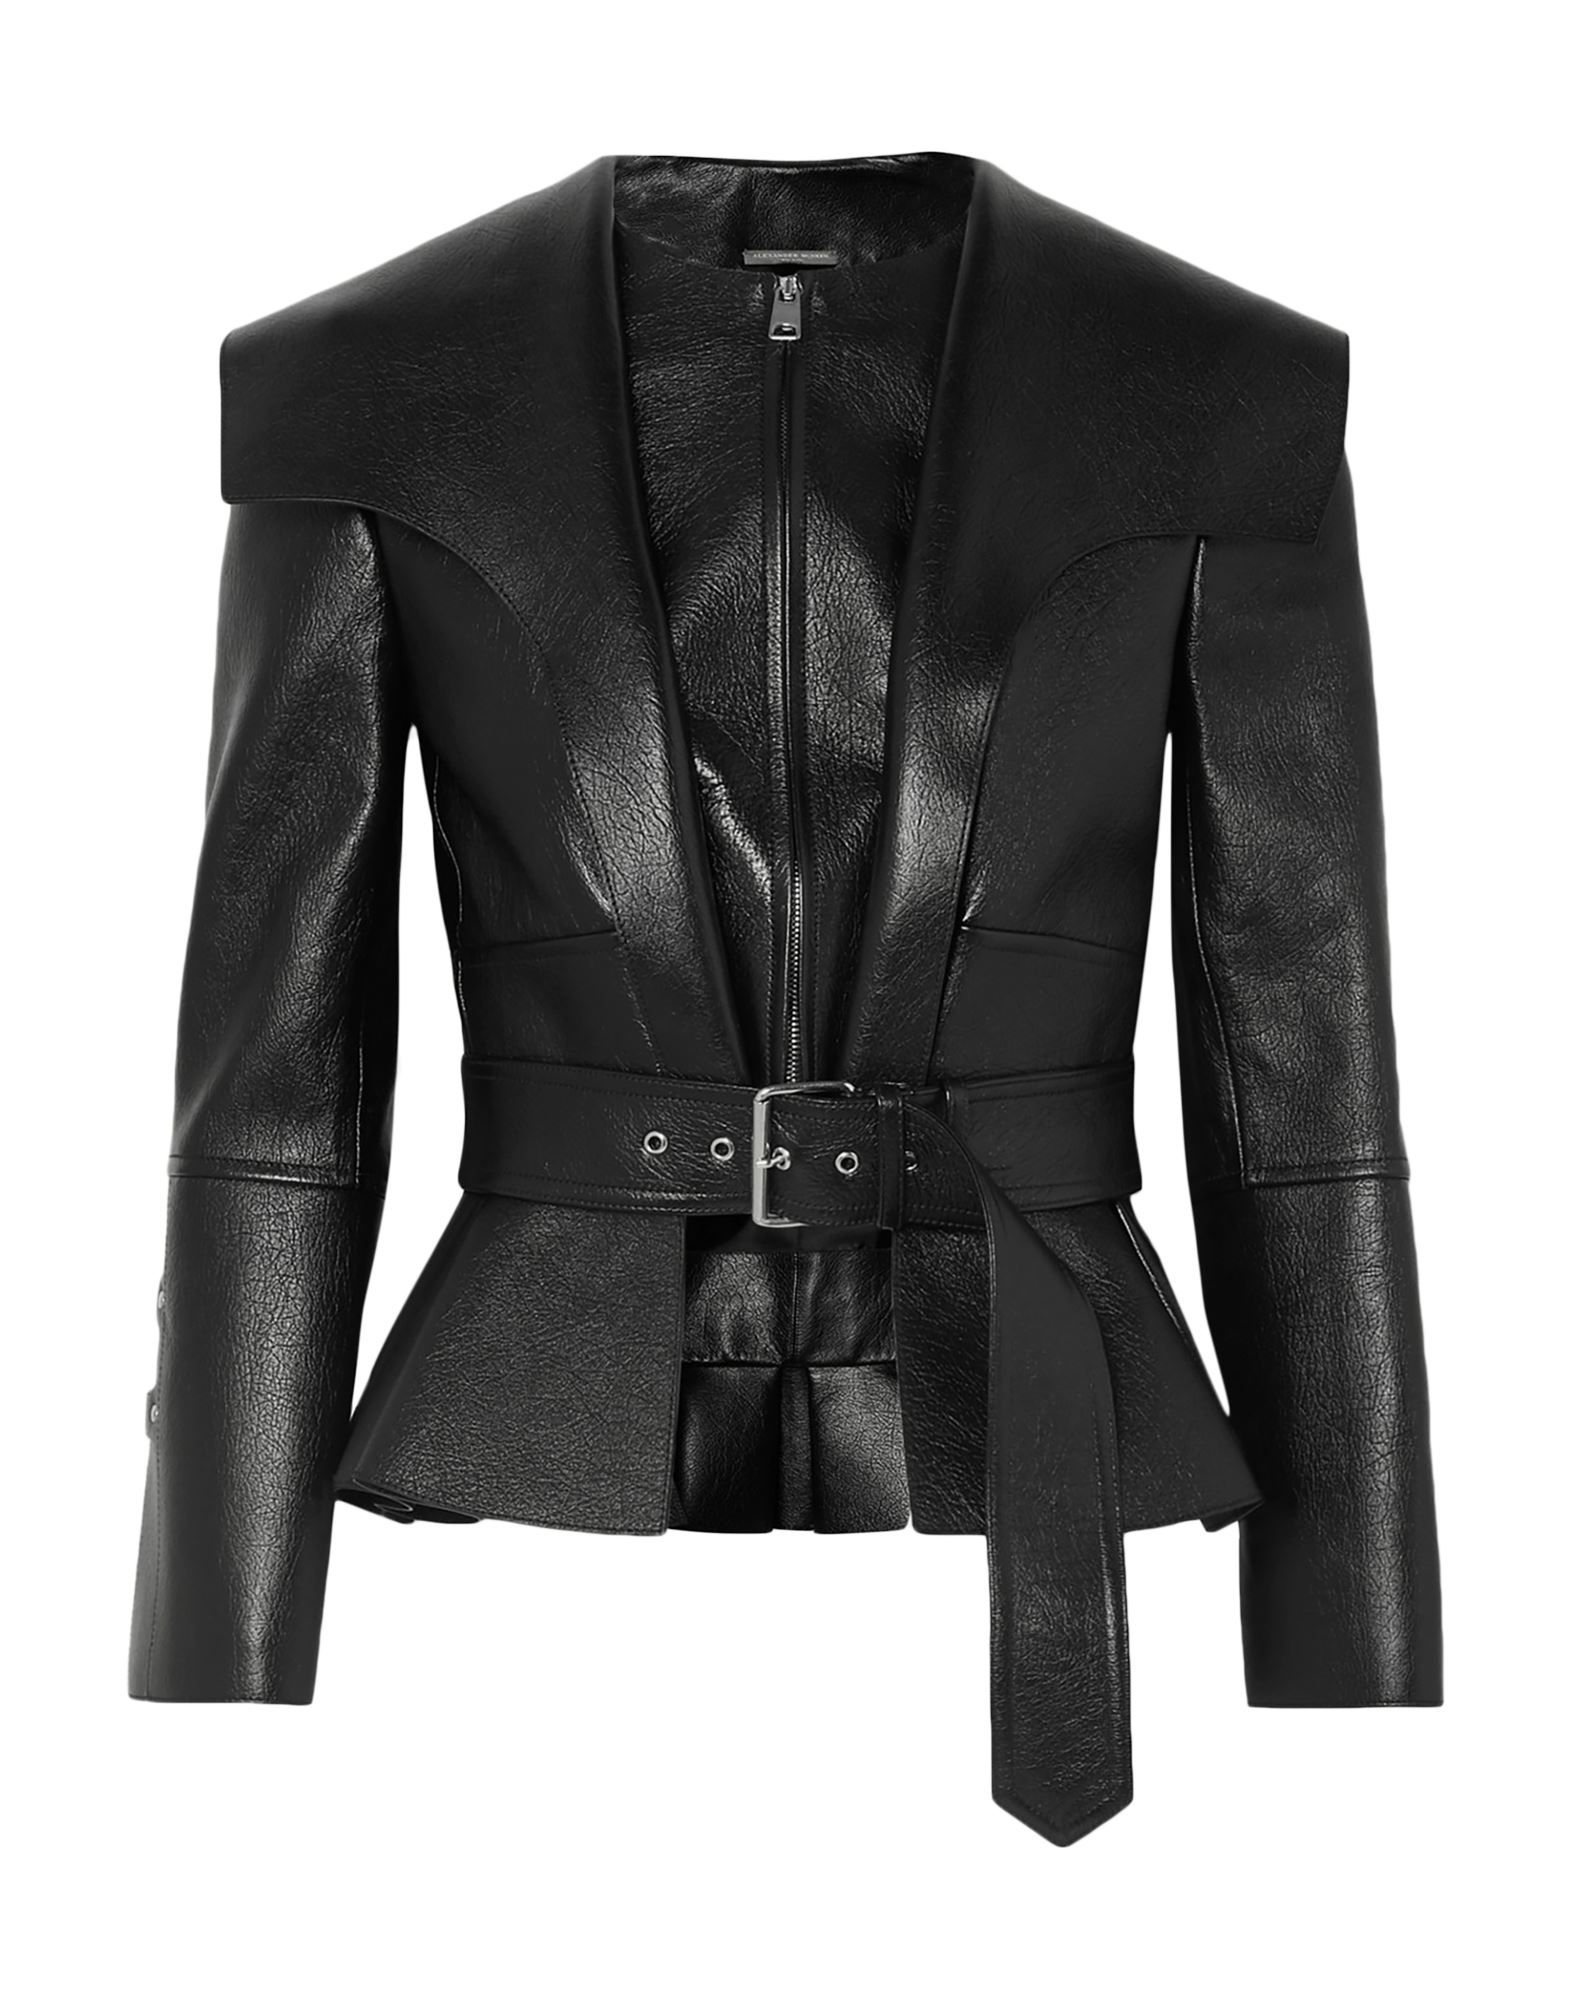 ALEXANDER MCQUEEN Jackets. leather, belt, strap detailing, basic solid color, single-breasted, zipper closure, round collar, no pockets, long sleeves, fully lined, contains non-textile parts of animal origin, small sized. 100% Lambskin